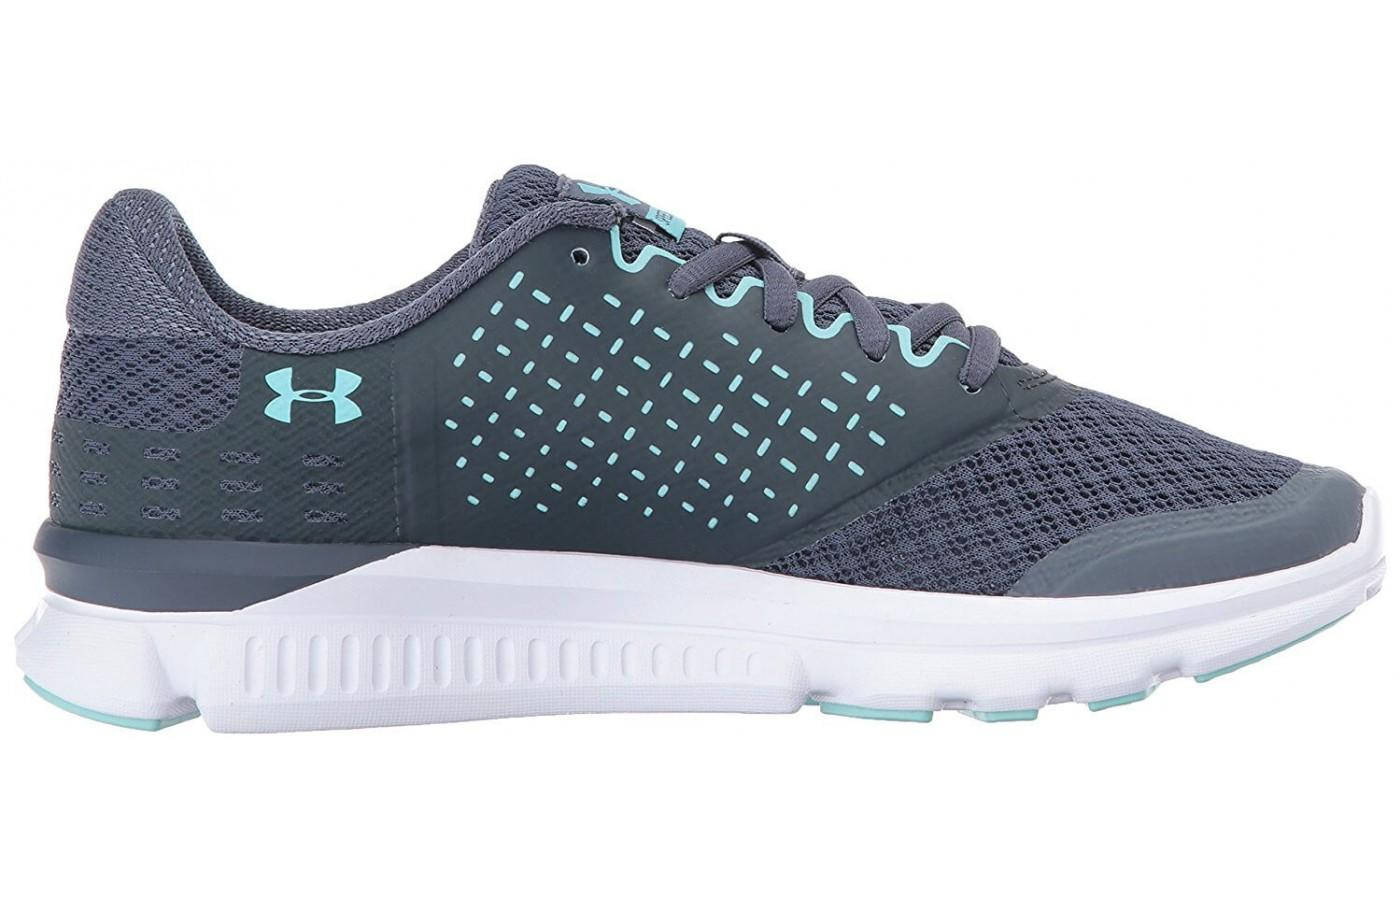 The Under Armour Speed Swift 2 features Micro G foam cushioning